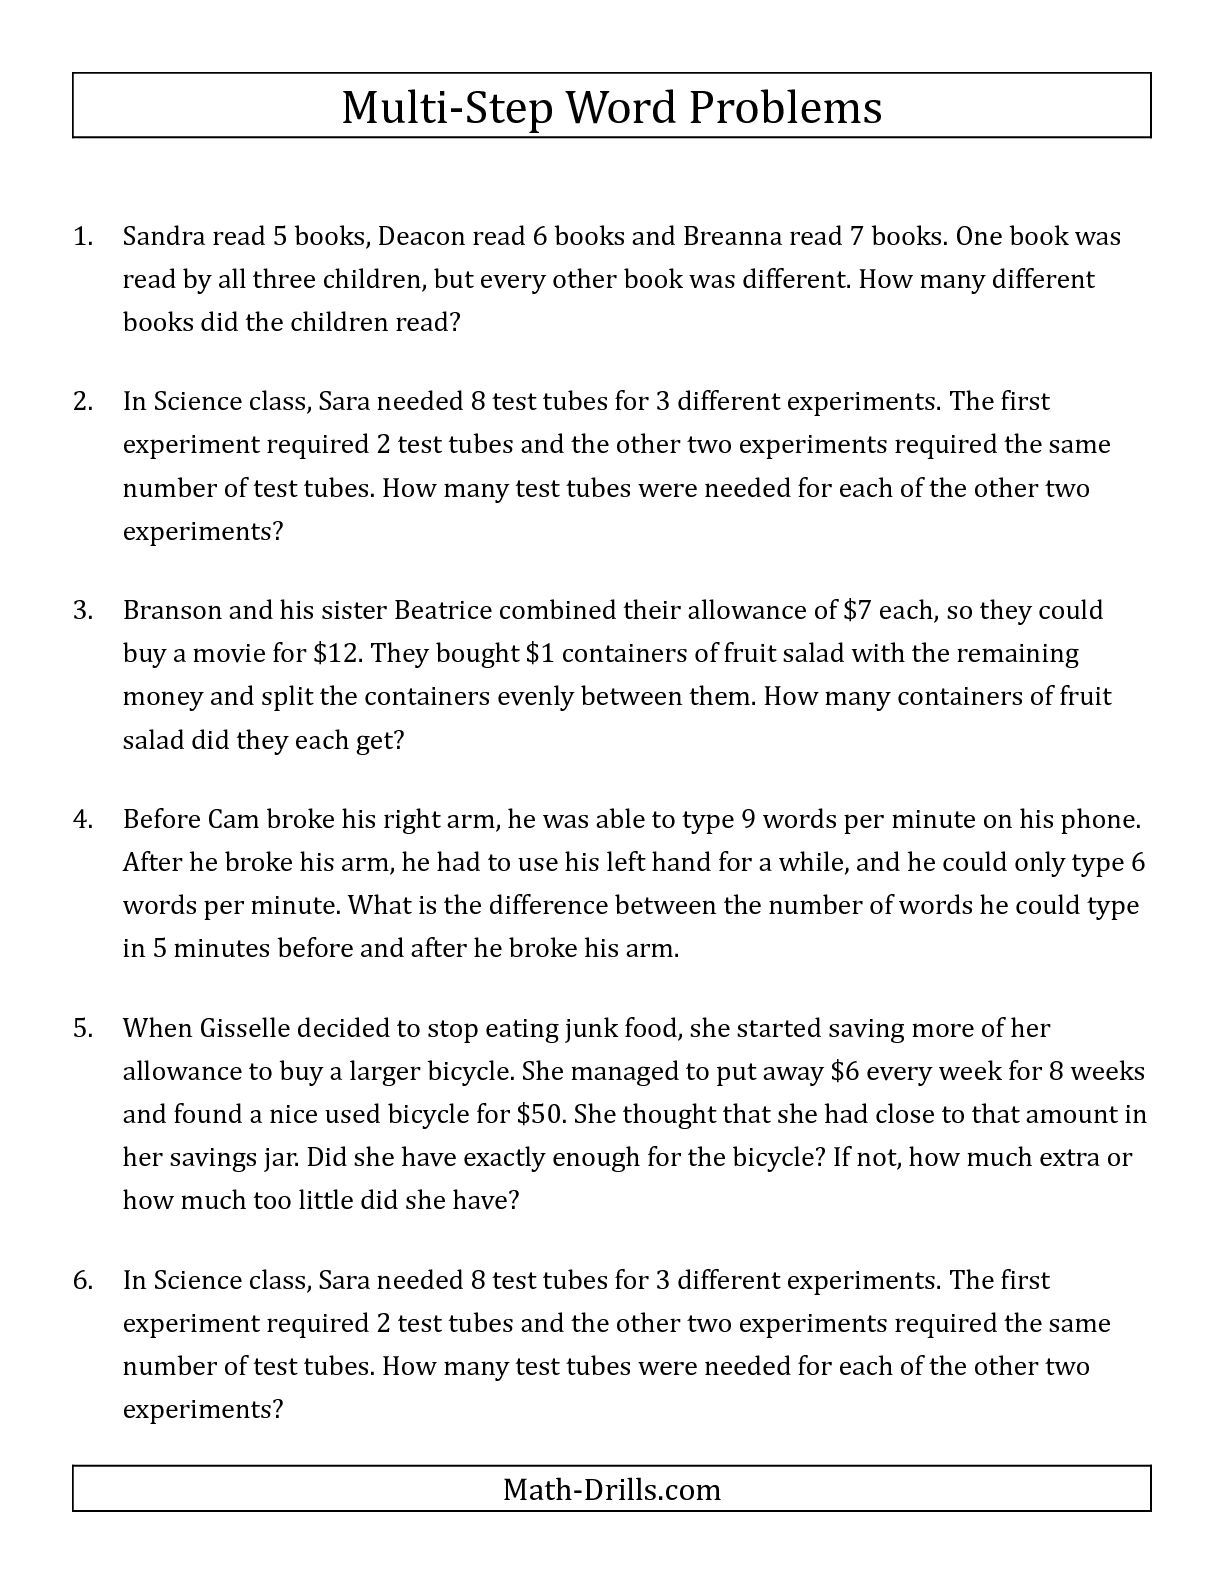 The Easy Multi Step Word Problems Math Worksheet From The Word Problems Worksheet Page At Math